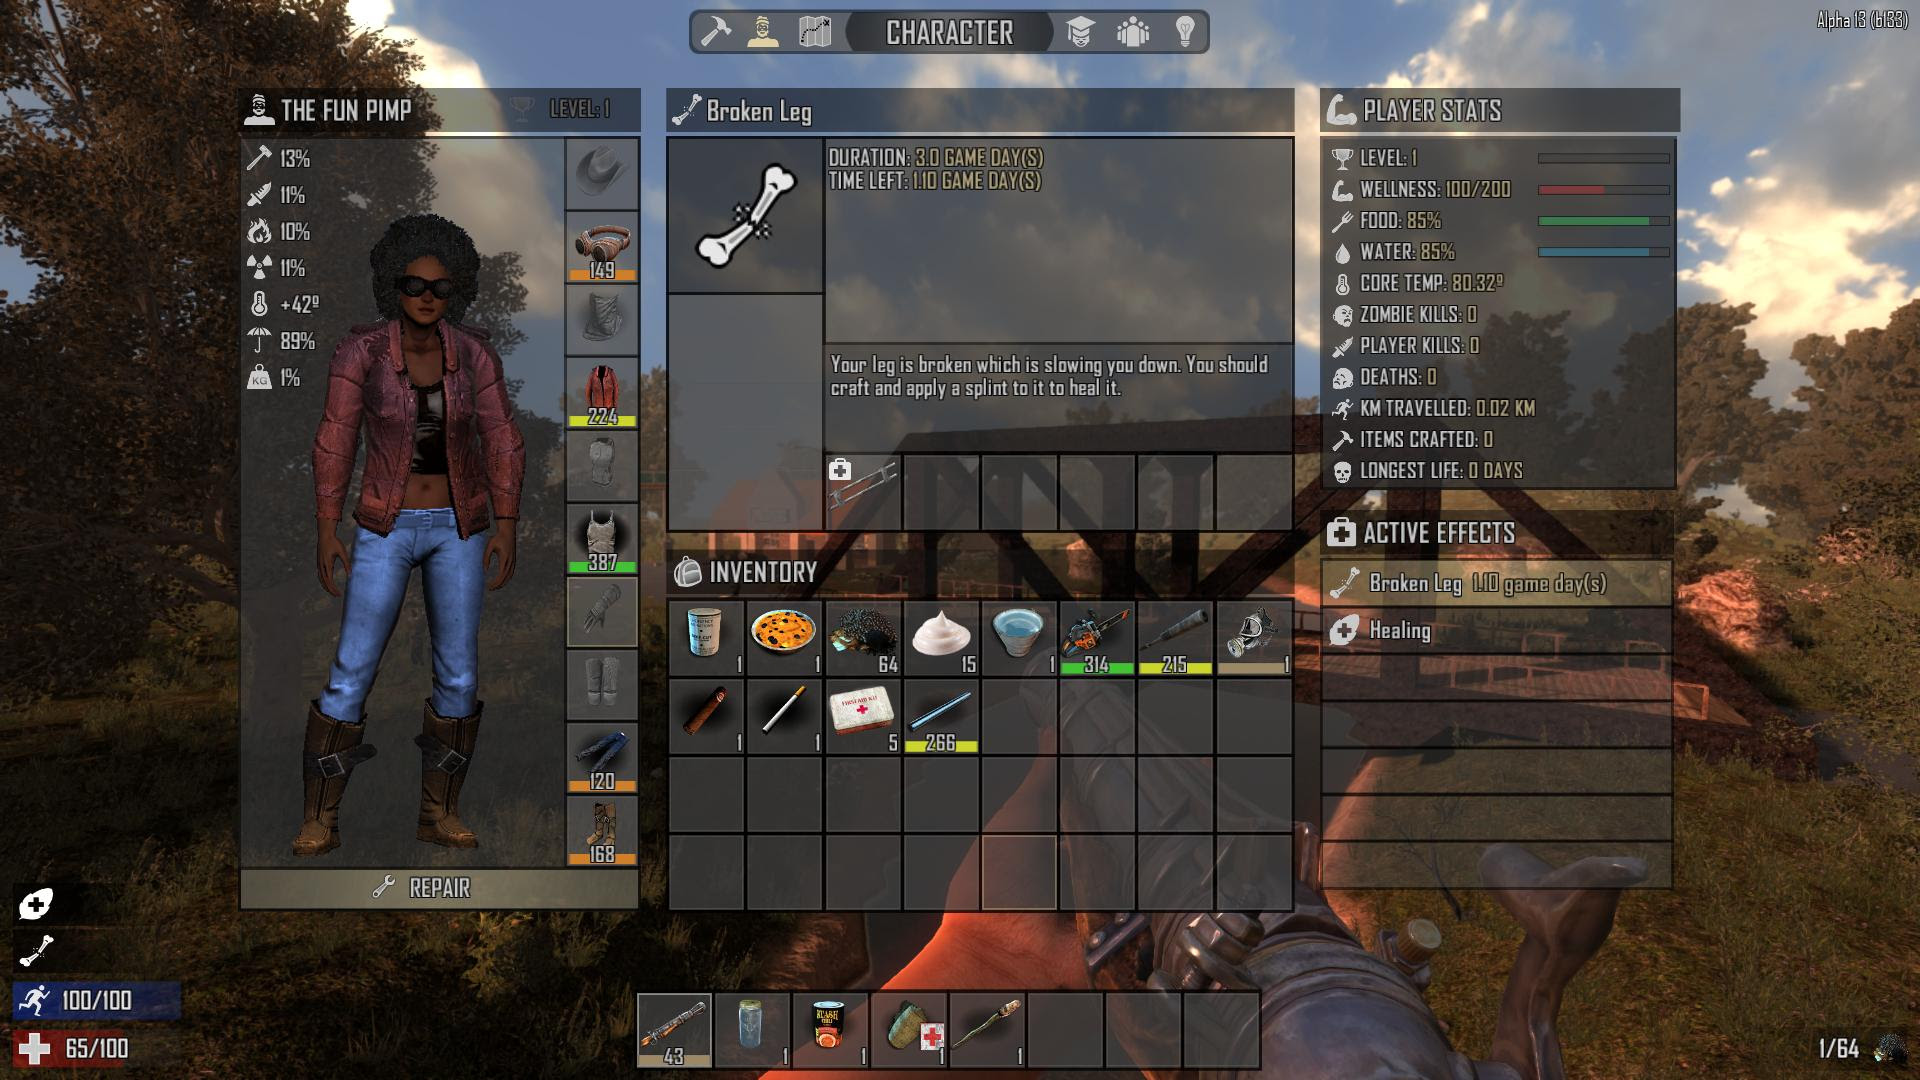 7 days to die ps4 map download